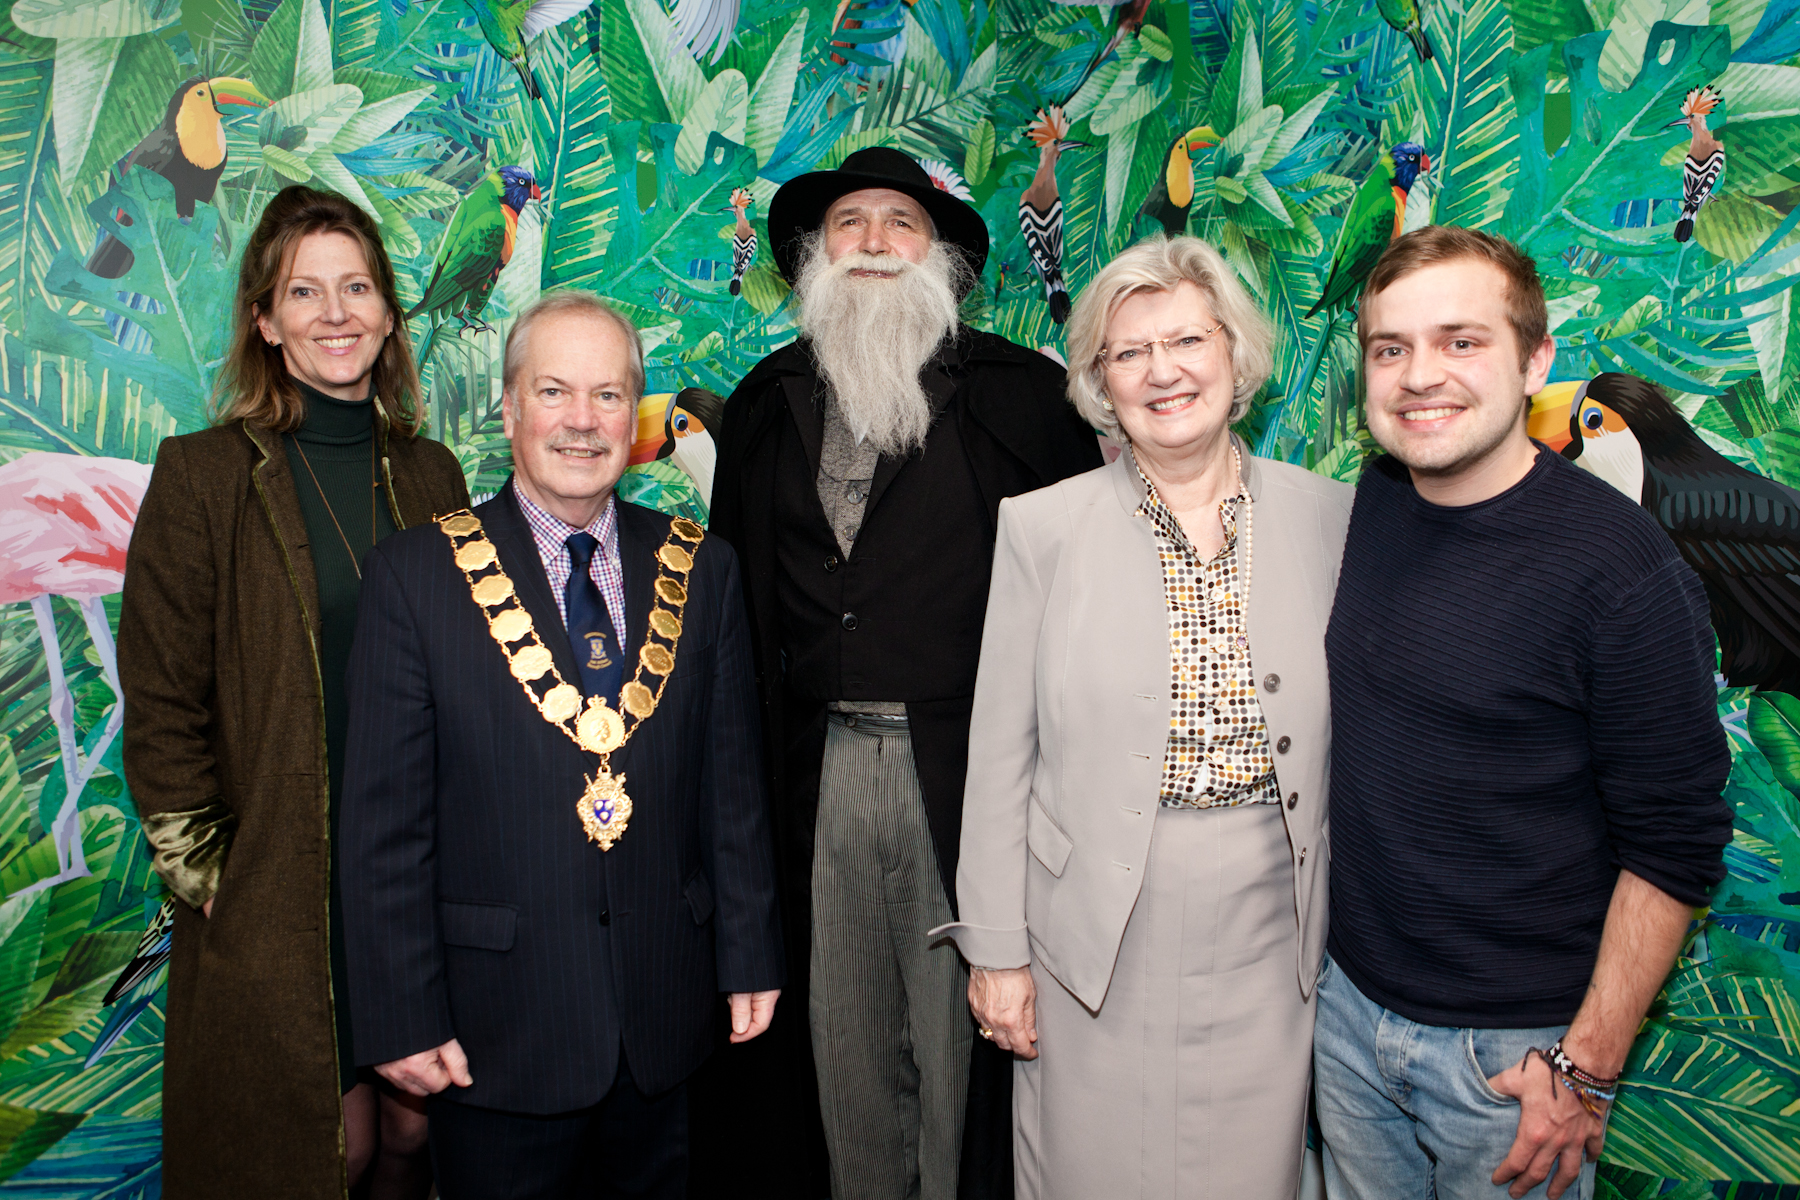 Shropshire's Young Thinkers celebrated at Darwin Festival